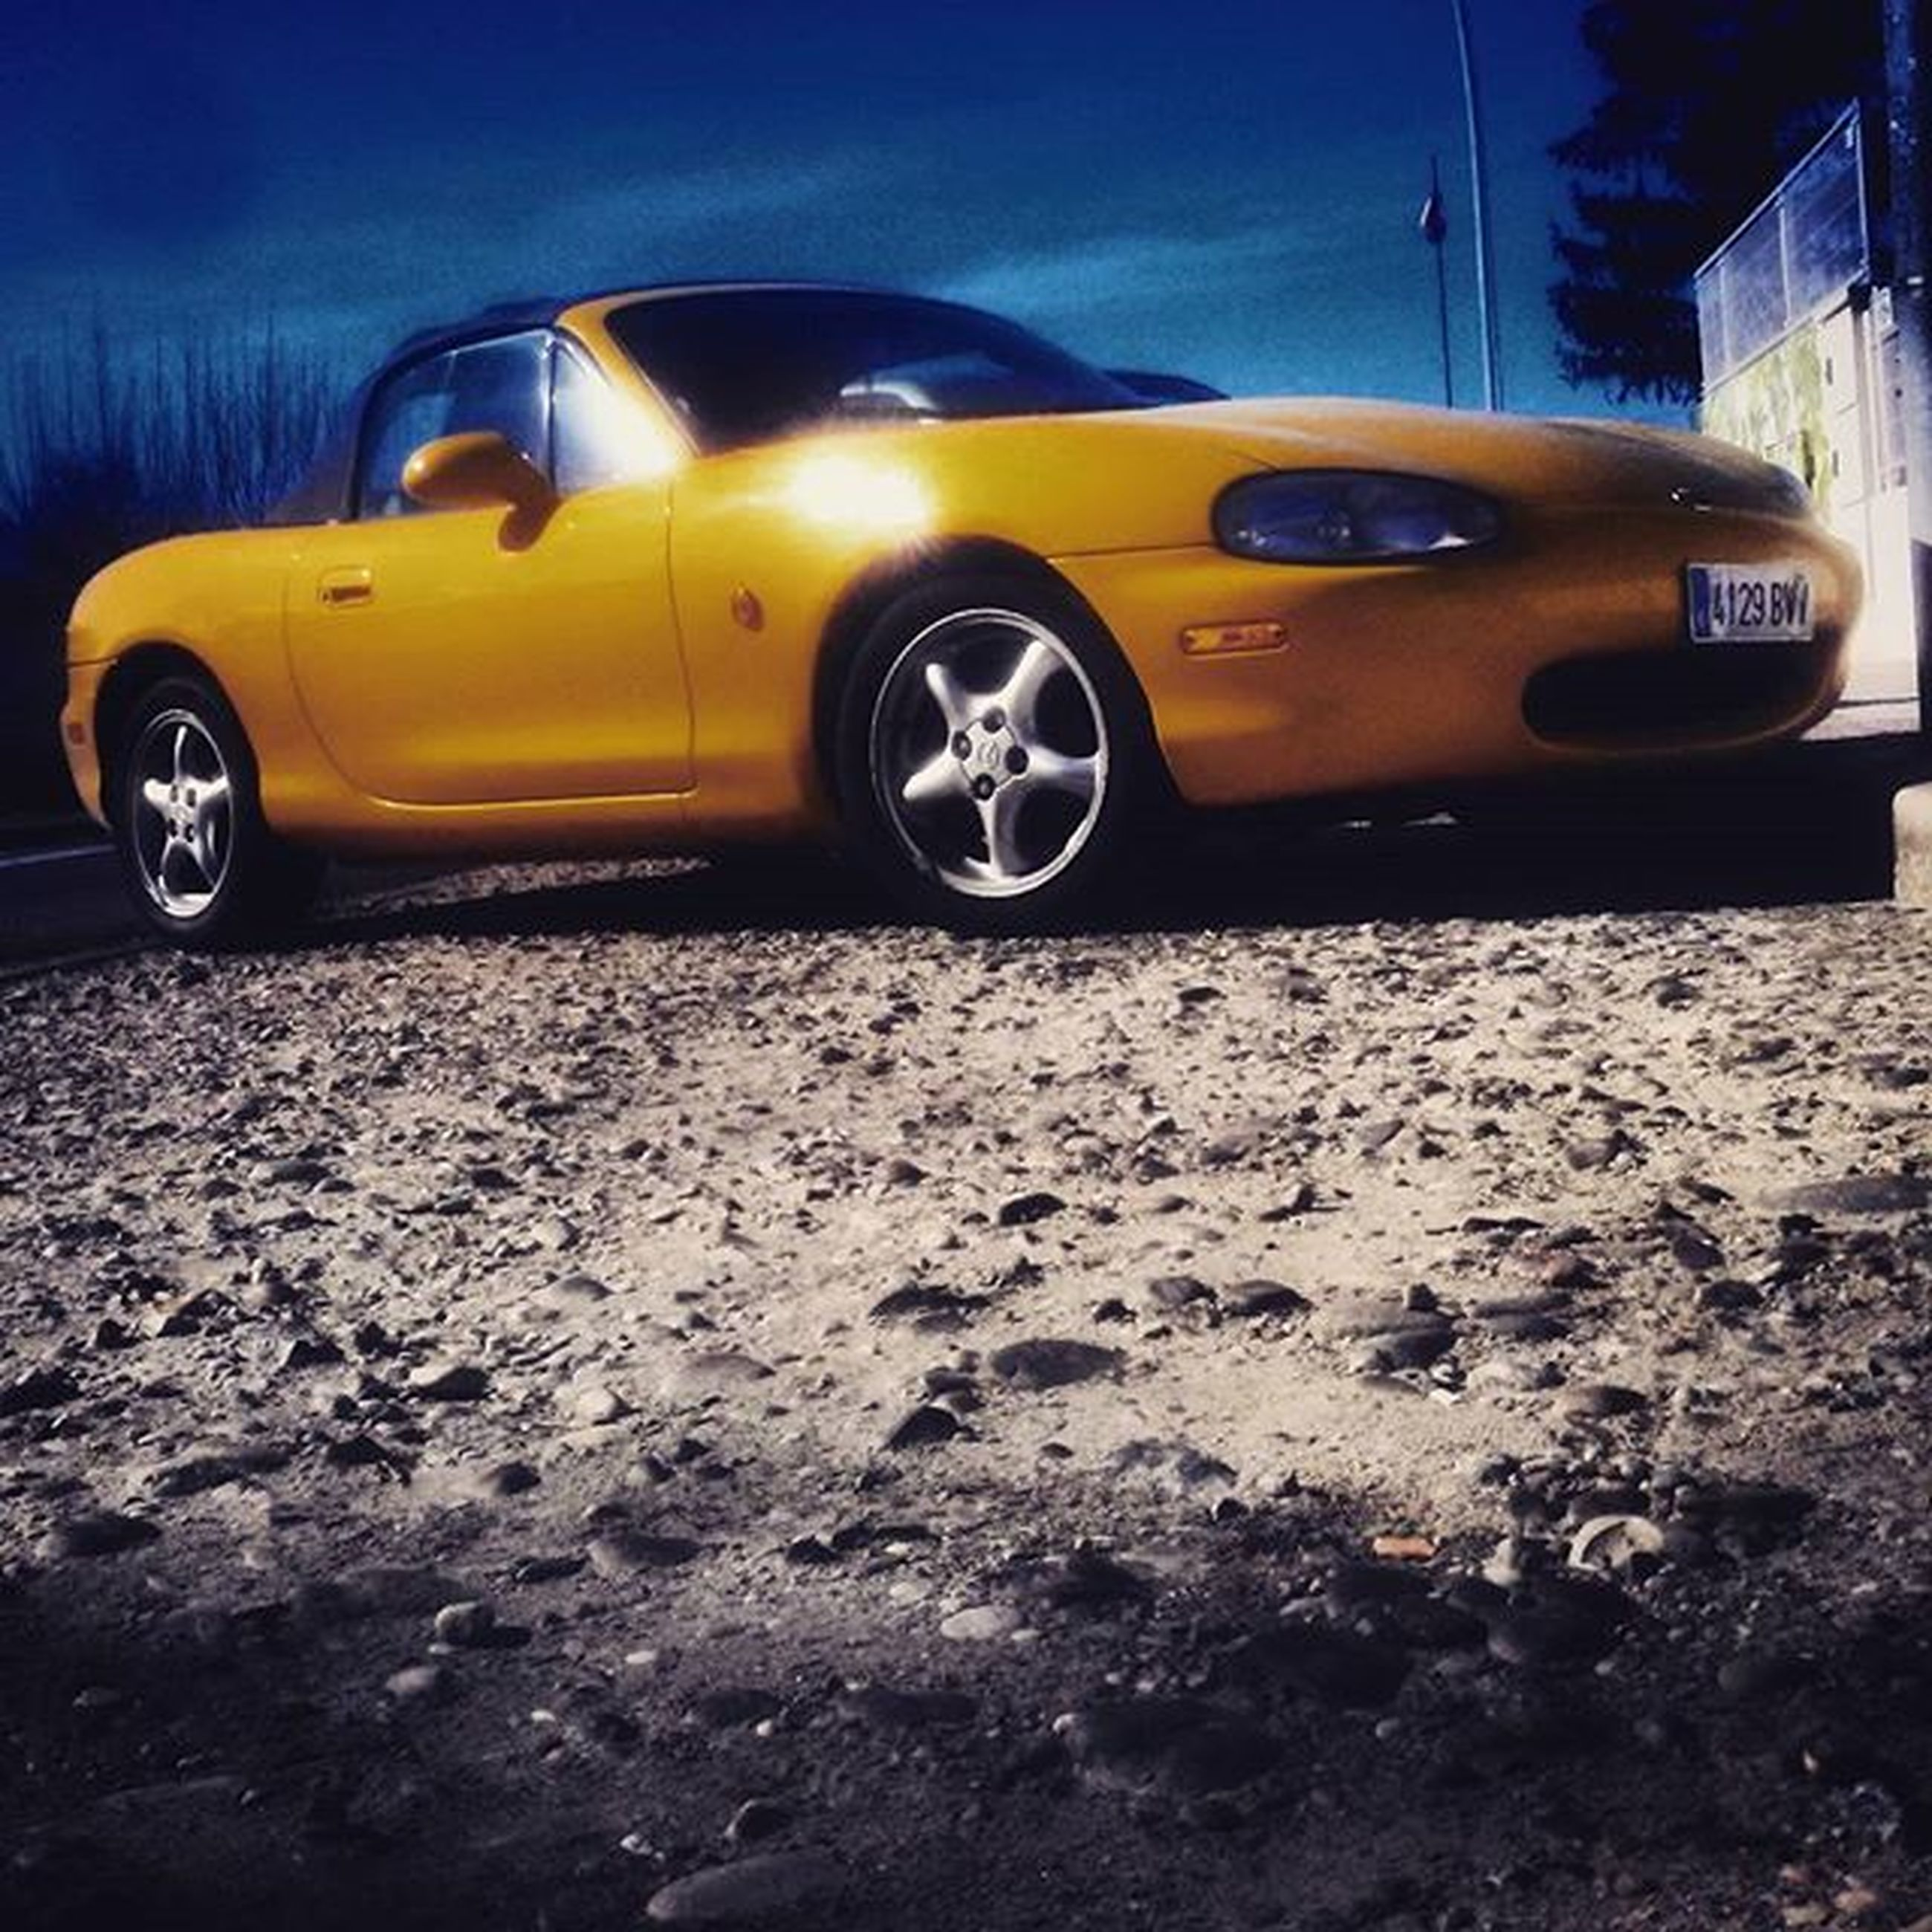 transportation, land vehicle, mode of transport, car, street, yellow, stationary, road, headlight, travel, outdoors, no people, parked, parking, on the move, vehicle, sunlight, day, surface level, close-up